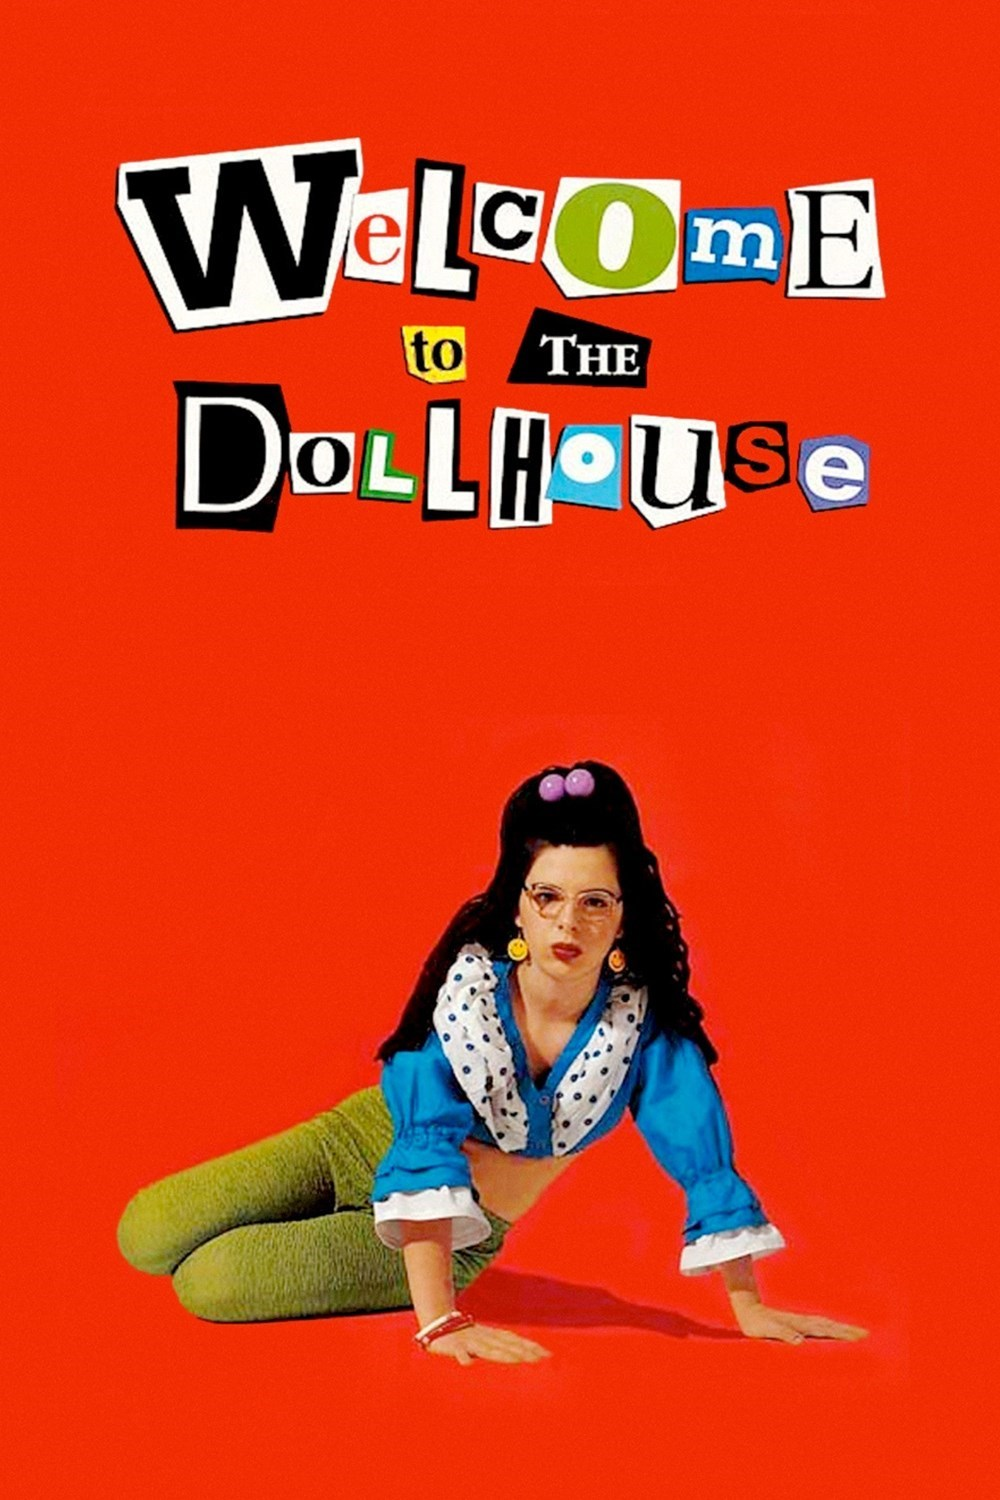 welcome-to-the-dollhouse.24663.jpg